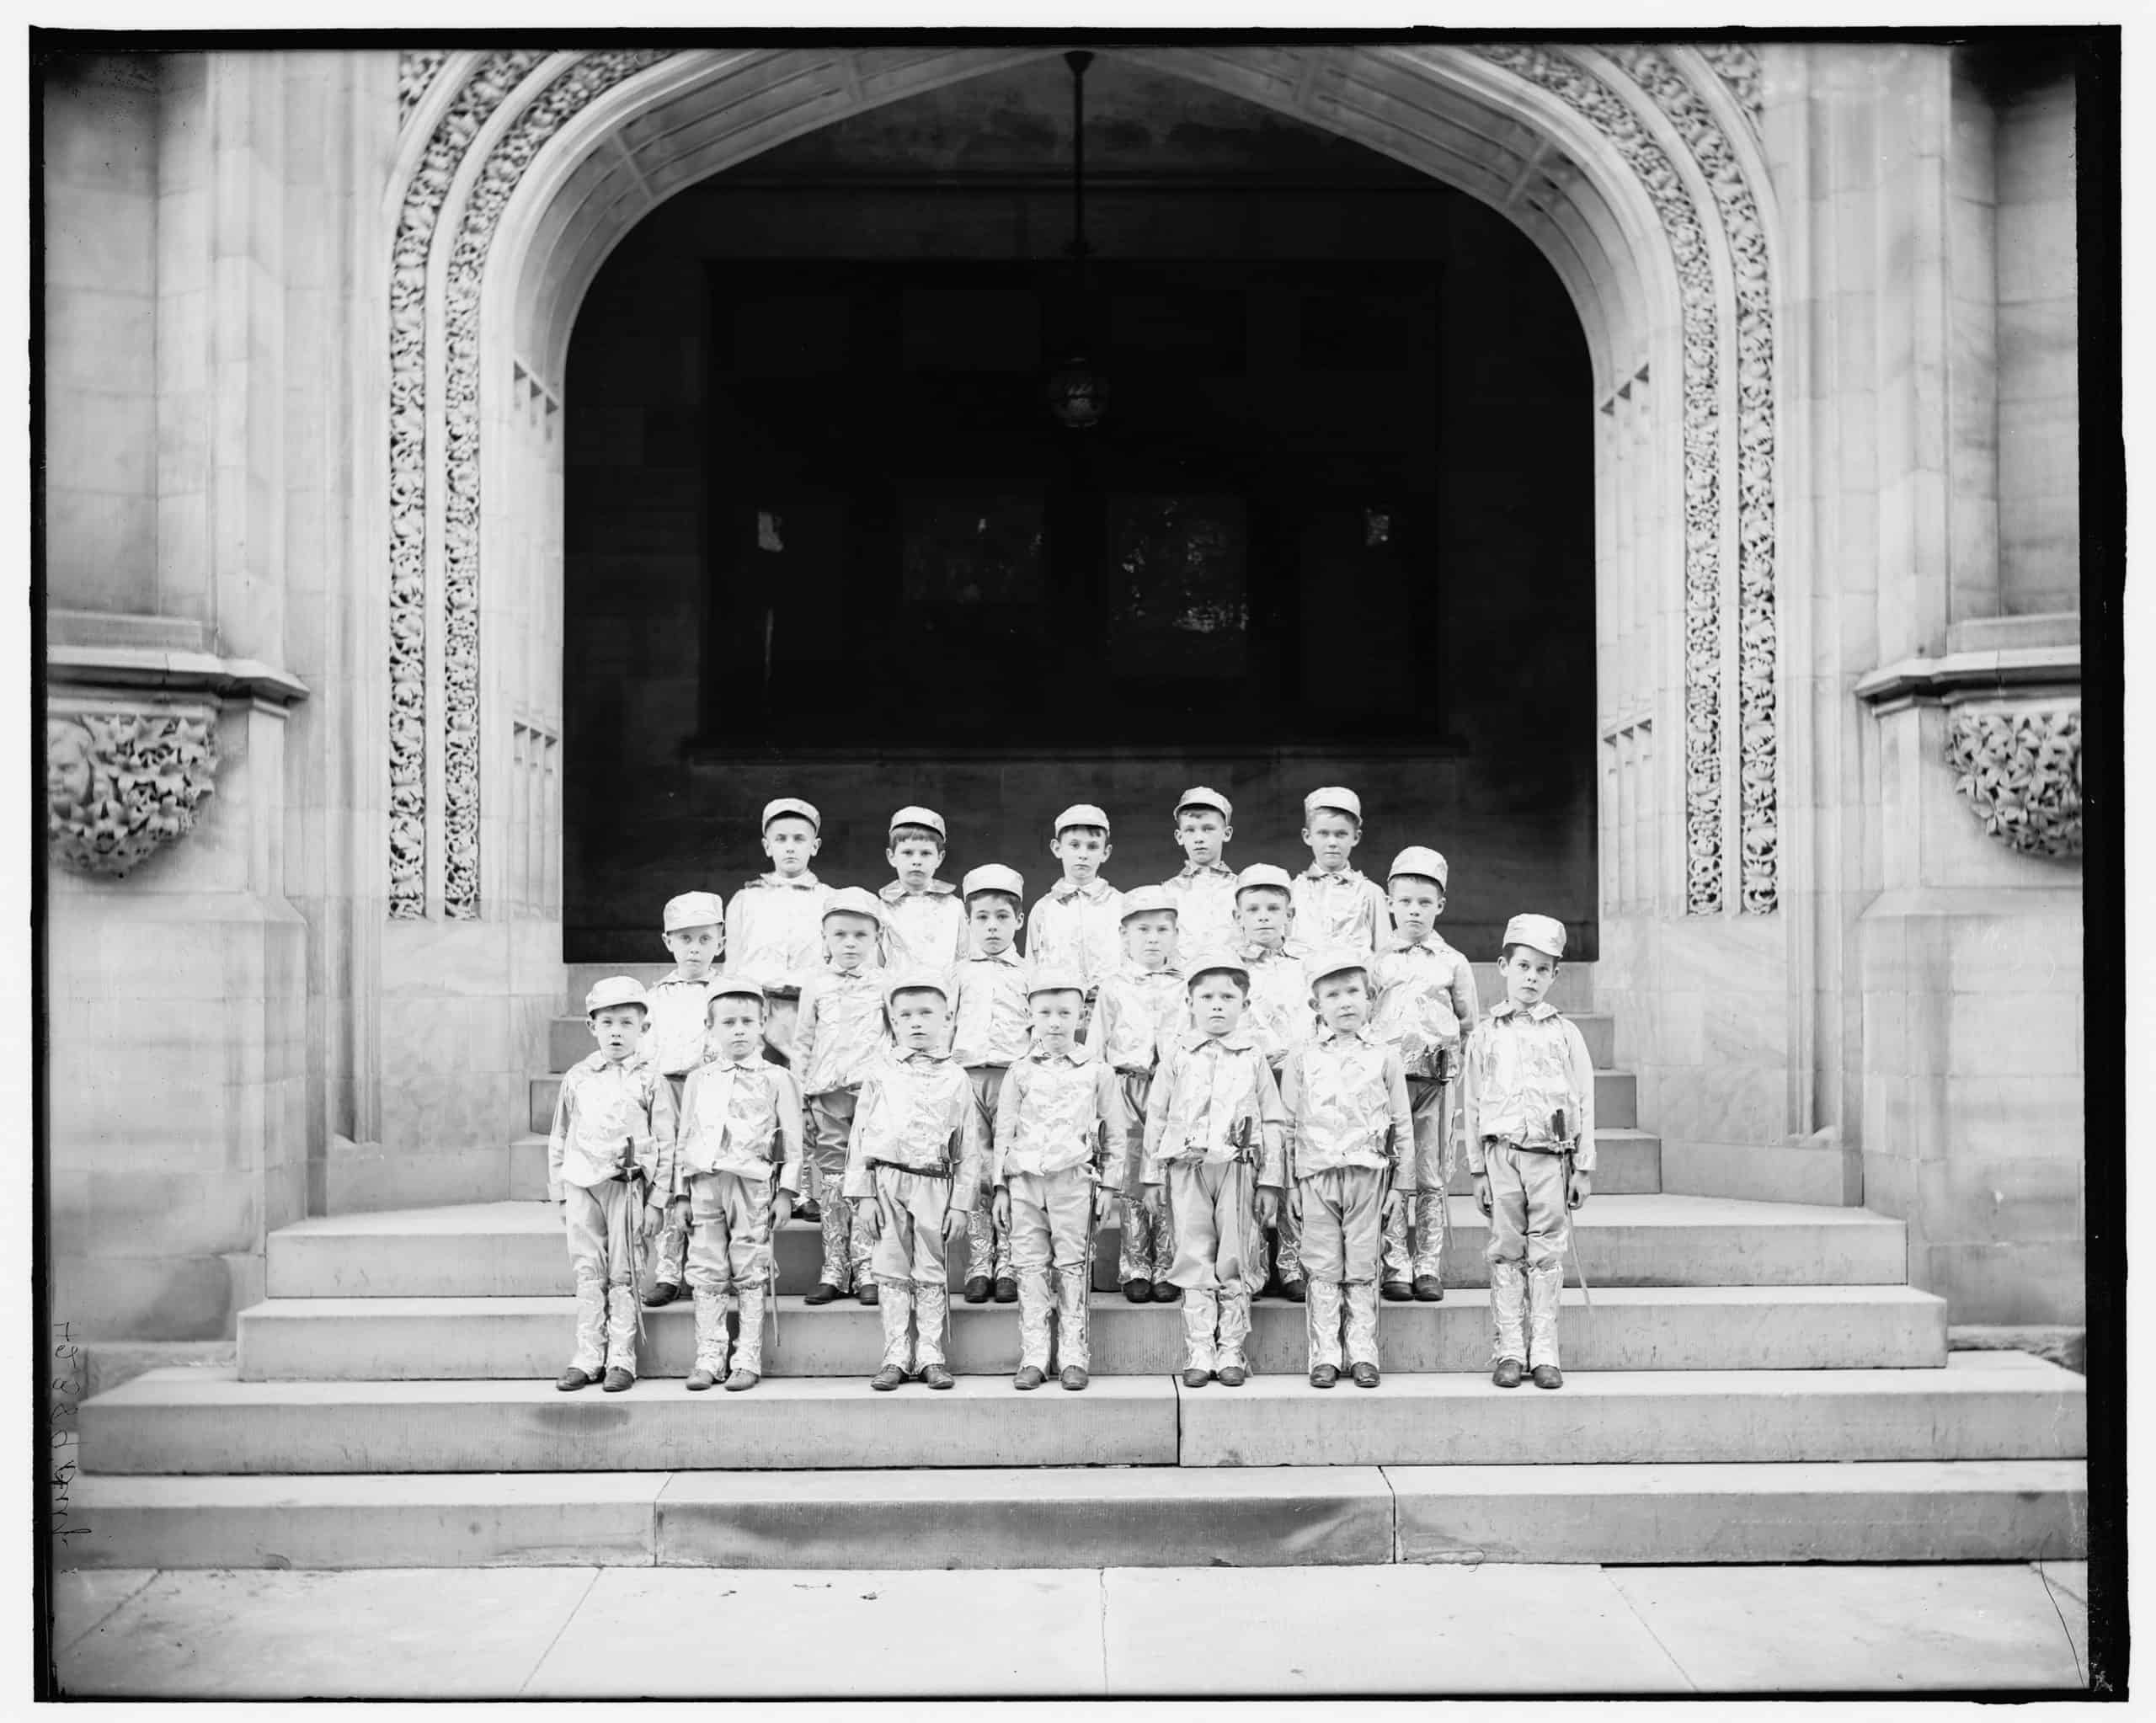 School boys. Detroit Publishing Co., between 1900 and 1905